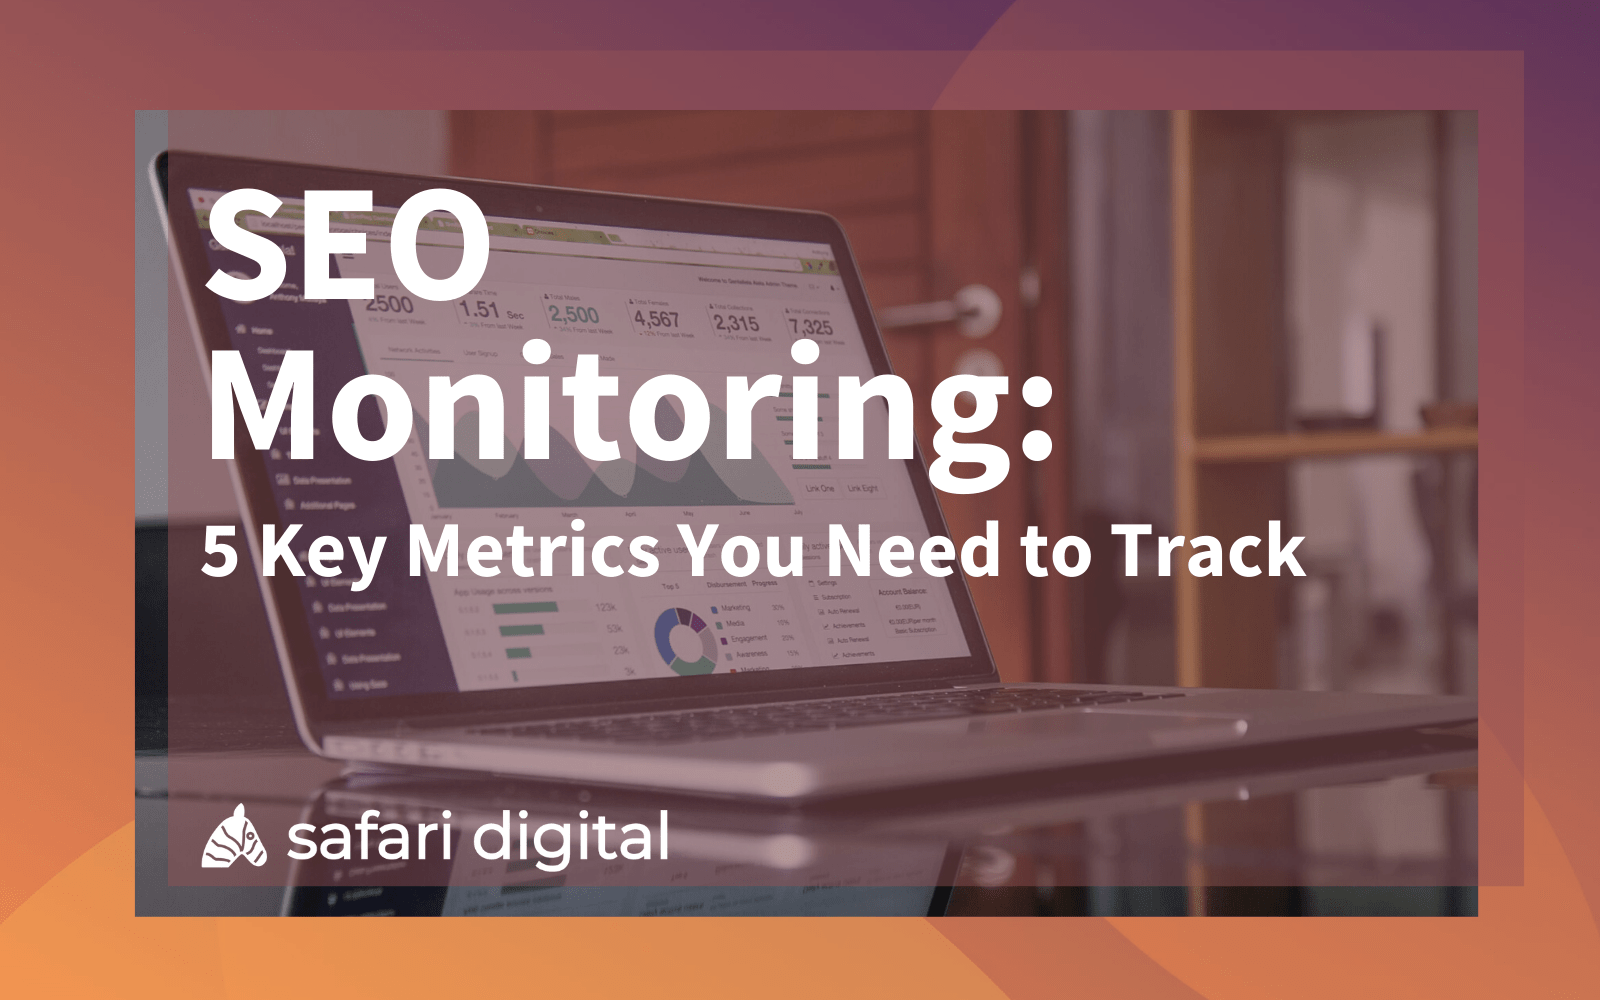 SEO Monitoring Metrics Cover